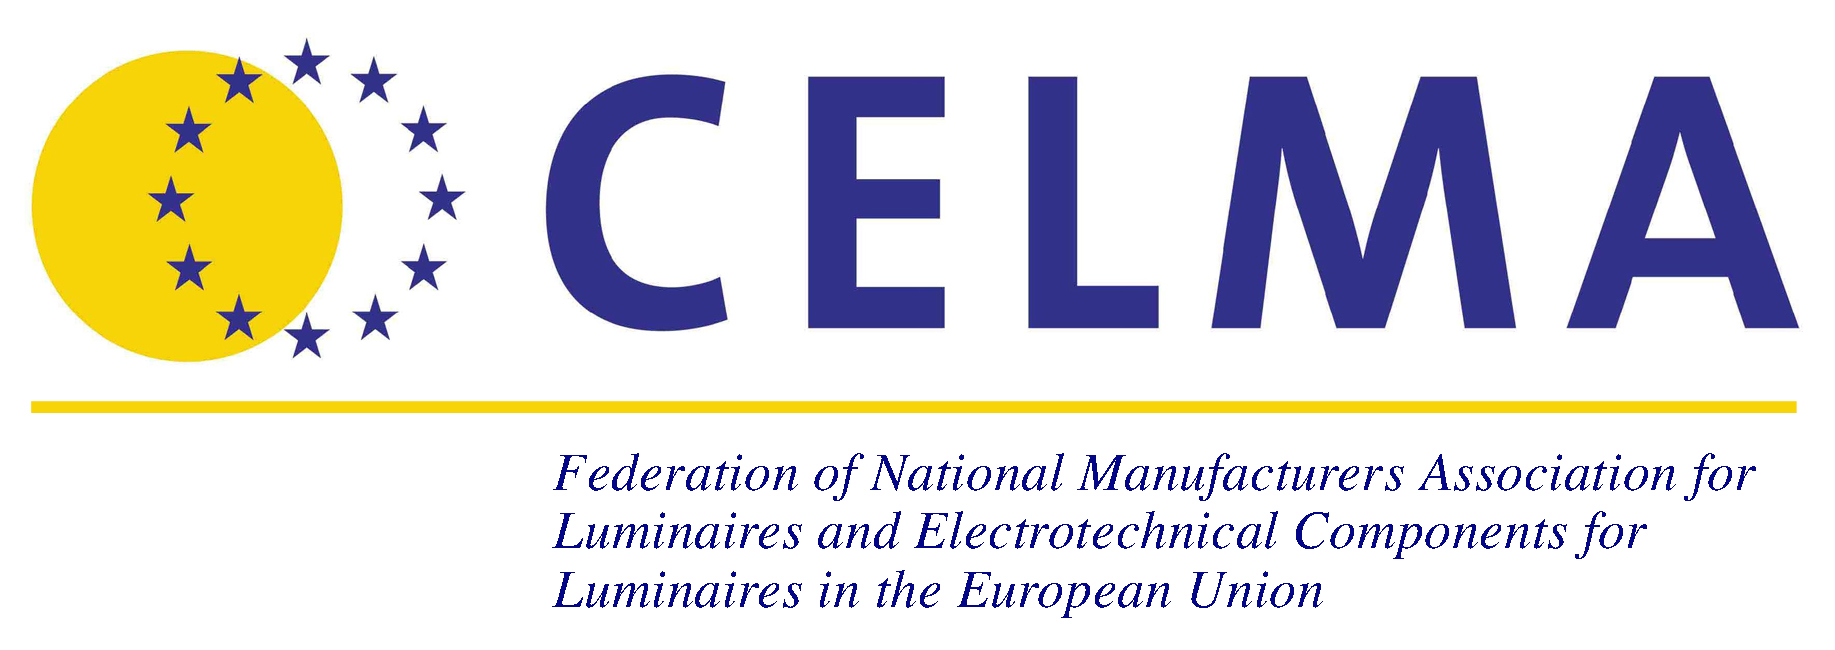 logo for Committee of EU Luminaires Manufacturers Associations